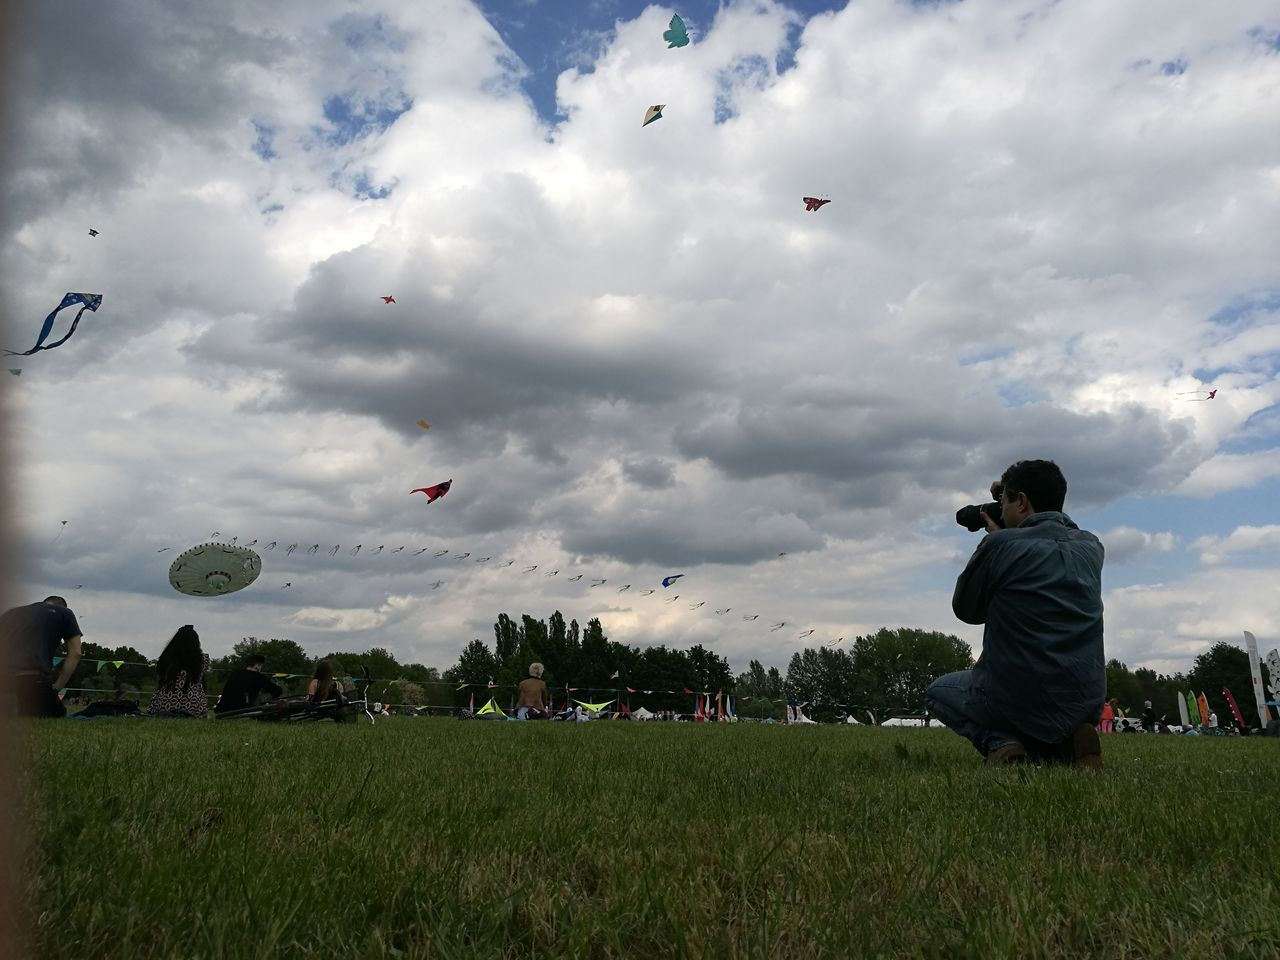 Man Photographing While Crouching On Field Against Sky